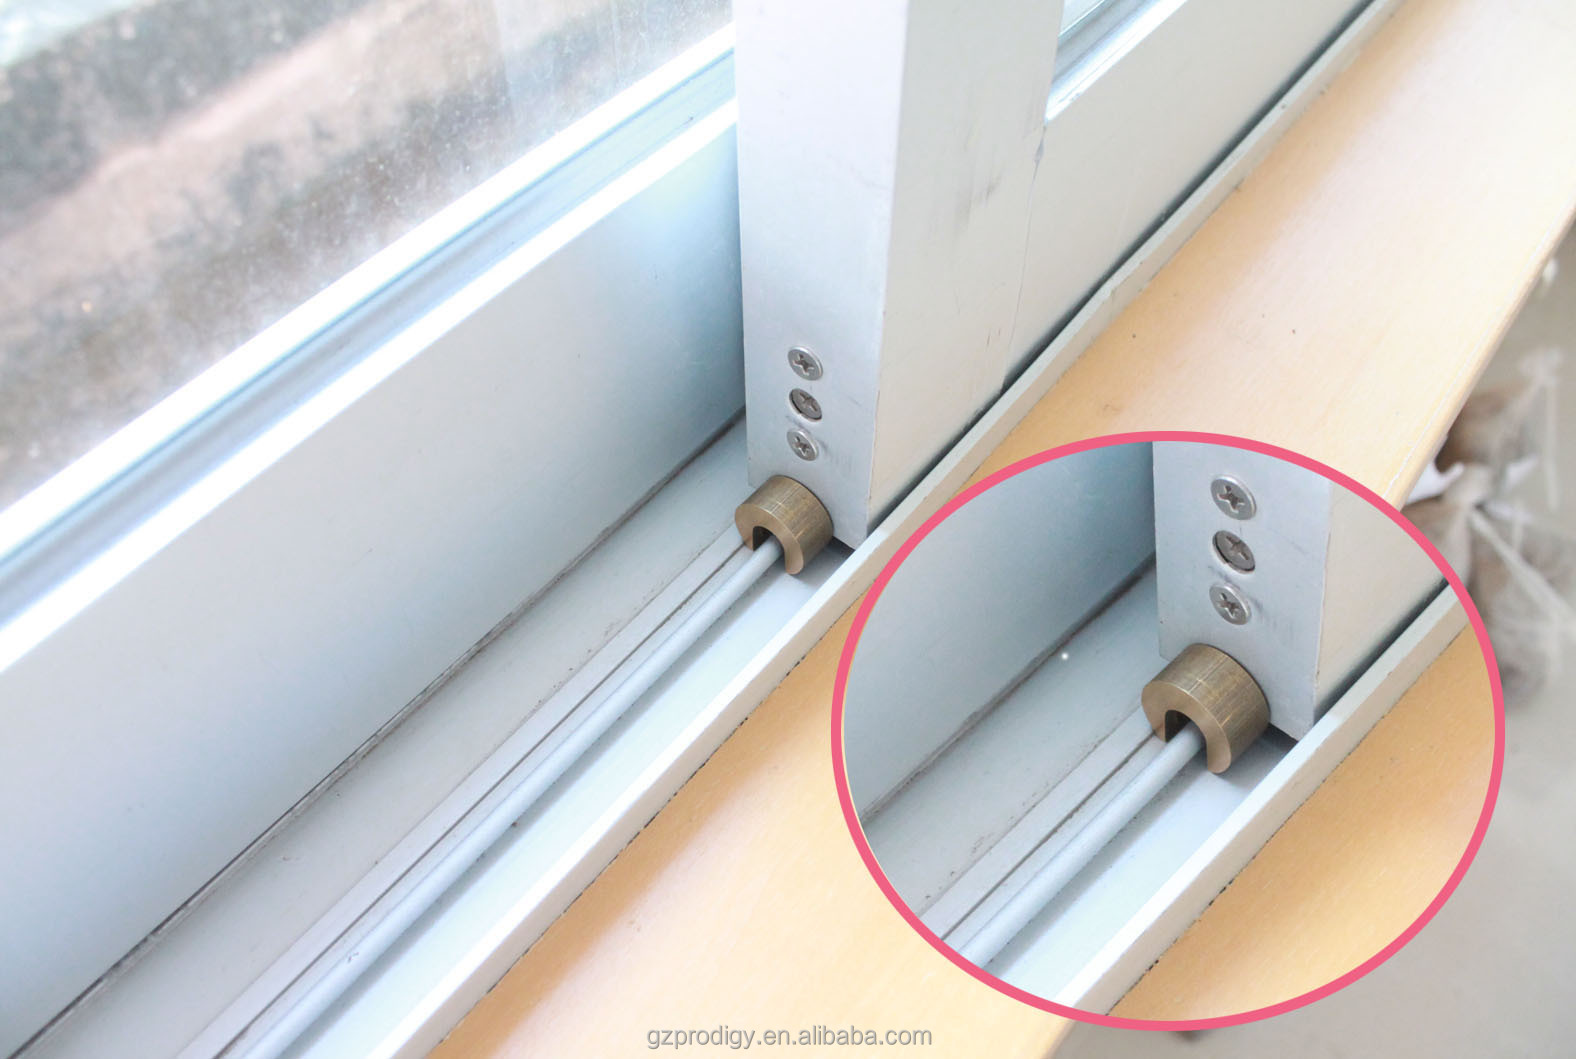 Easy Install Baby Safety Product Sliding Window Stop Lock